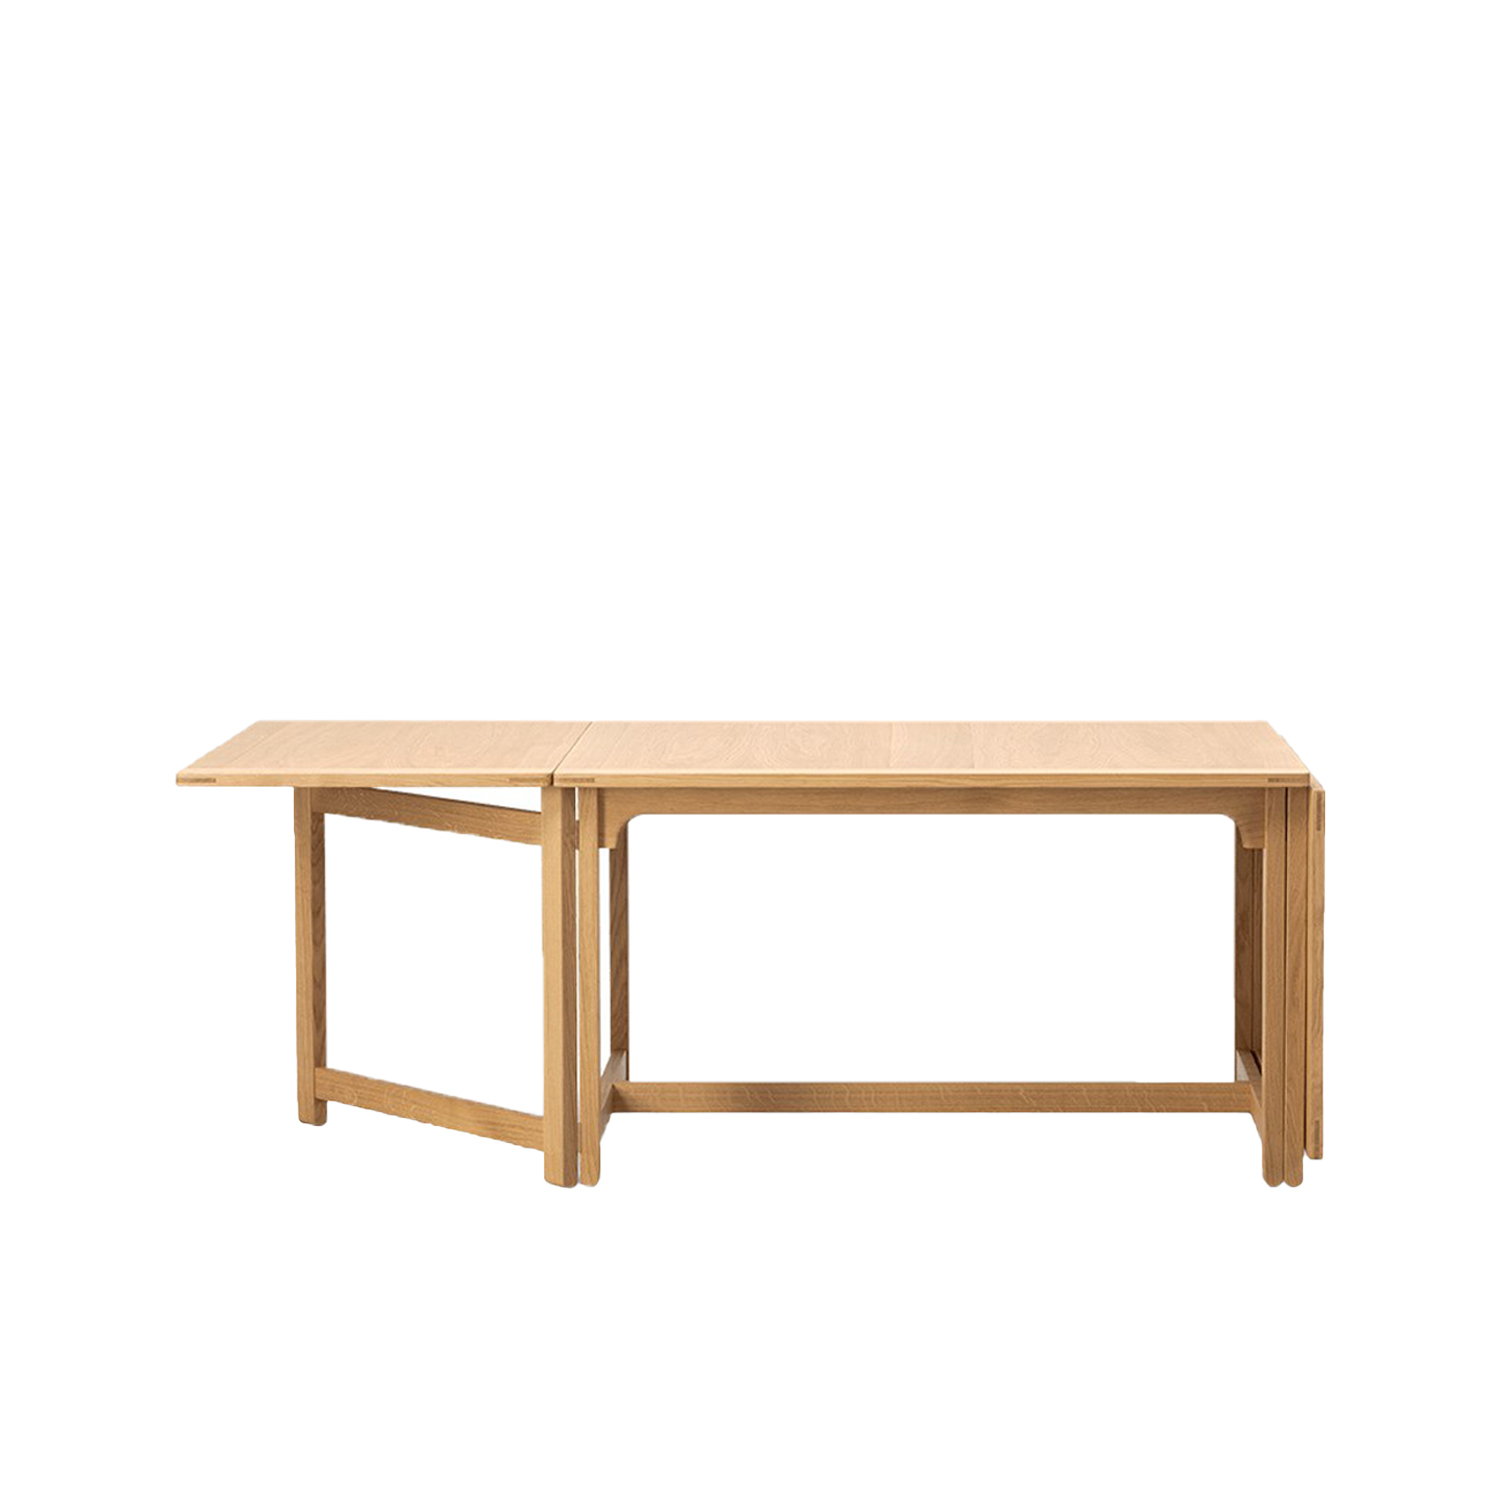 BM 71 Library Table - The Library Table is modest yet confident and refined in its visual expression. Pure in terms of lines and construction, it reflects Mogensen's meticulous, ultra functional approach to design, where every detail has a precise purpose that correlates to its use.  Practical, durable designs to enrich people's everyday lives. That sums up the essence of Børge Mogensen's overall intention with his work. Referring to wood as his preferred material, Mogensen designed an array of pieces noted for their sober expression and superb sense of proportion.   Mogensen applied the same principles to his iconic series of tables, appreciated for their clean, uncluttered lines inspired by the functional, utilitarian approach of the Shaker movement.   All our Mogensen tables reflect his ambition to create beautiful, distinctive furniture by emphasising simple horizontal and vertical lines and surfaces. A restrained aesthetic with a modest appearance intended to create a sense of tranquillity.   All of which makes the Mogensen tables an ideal choice for any gathering you can imagine. From corporate settings and meeting rooms to group dining and socialising. | Matter of Stuff